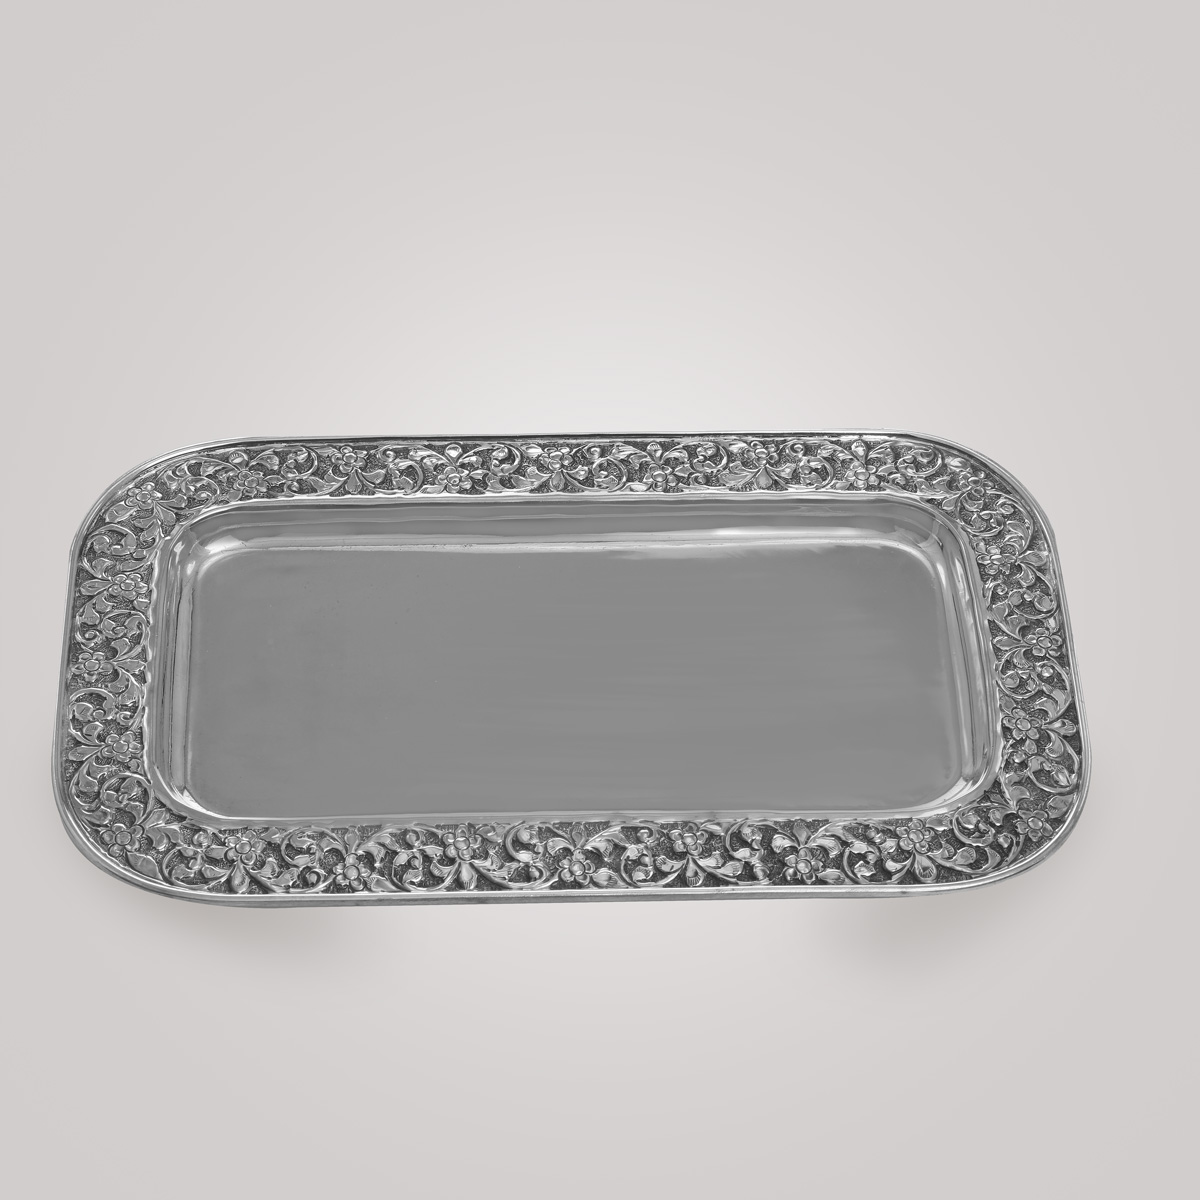 Silver Antique Plate